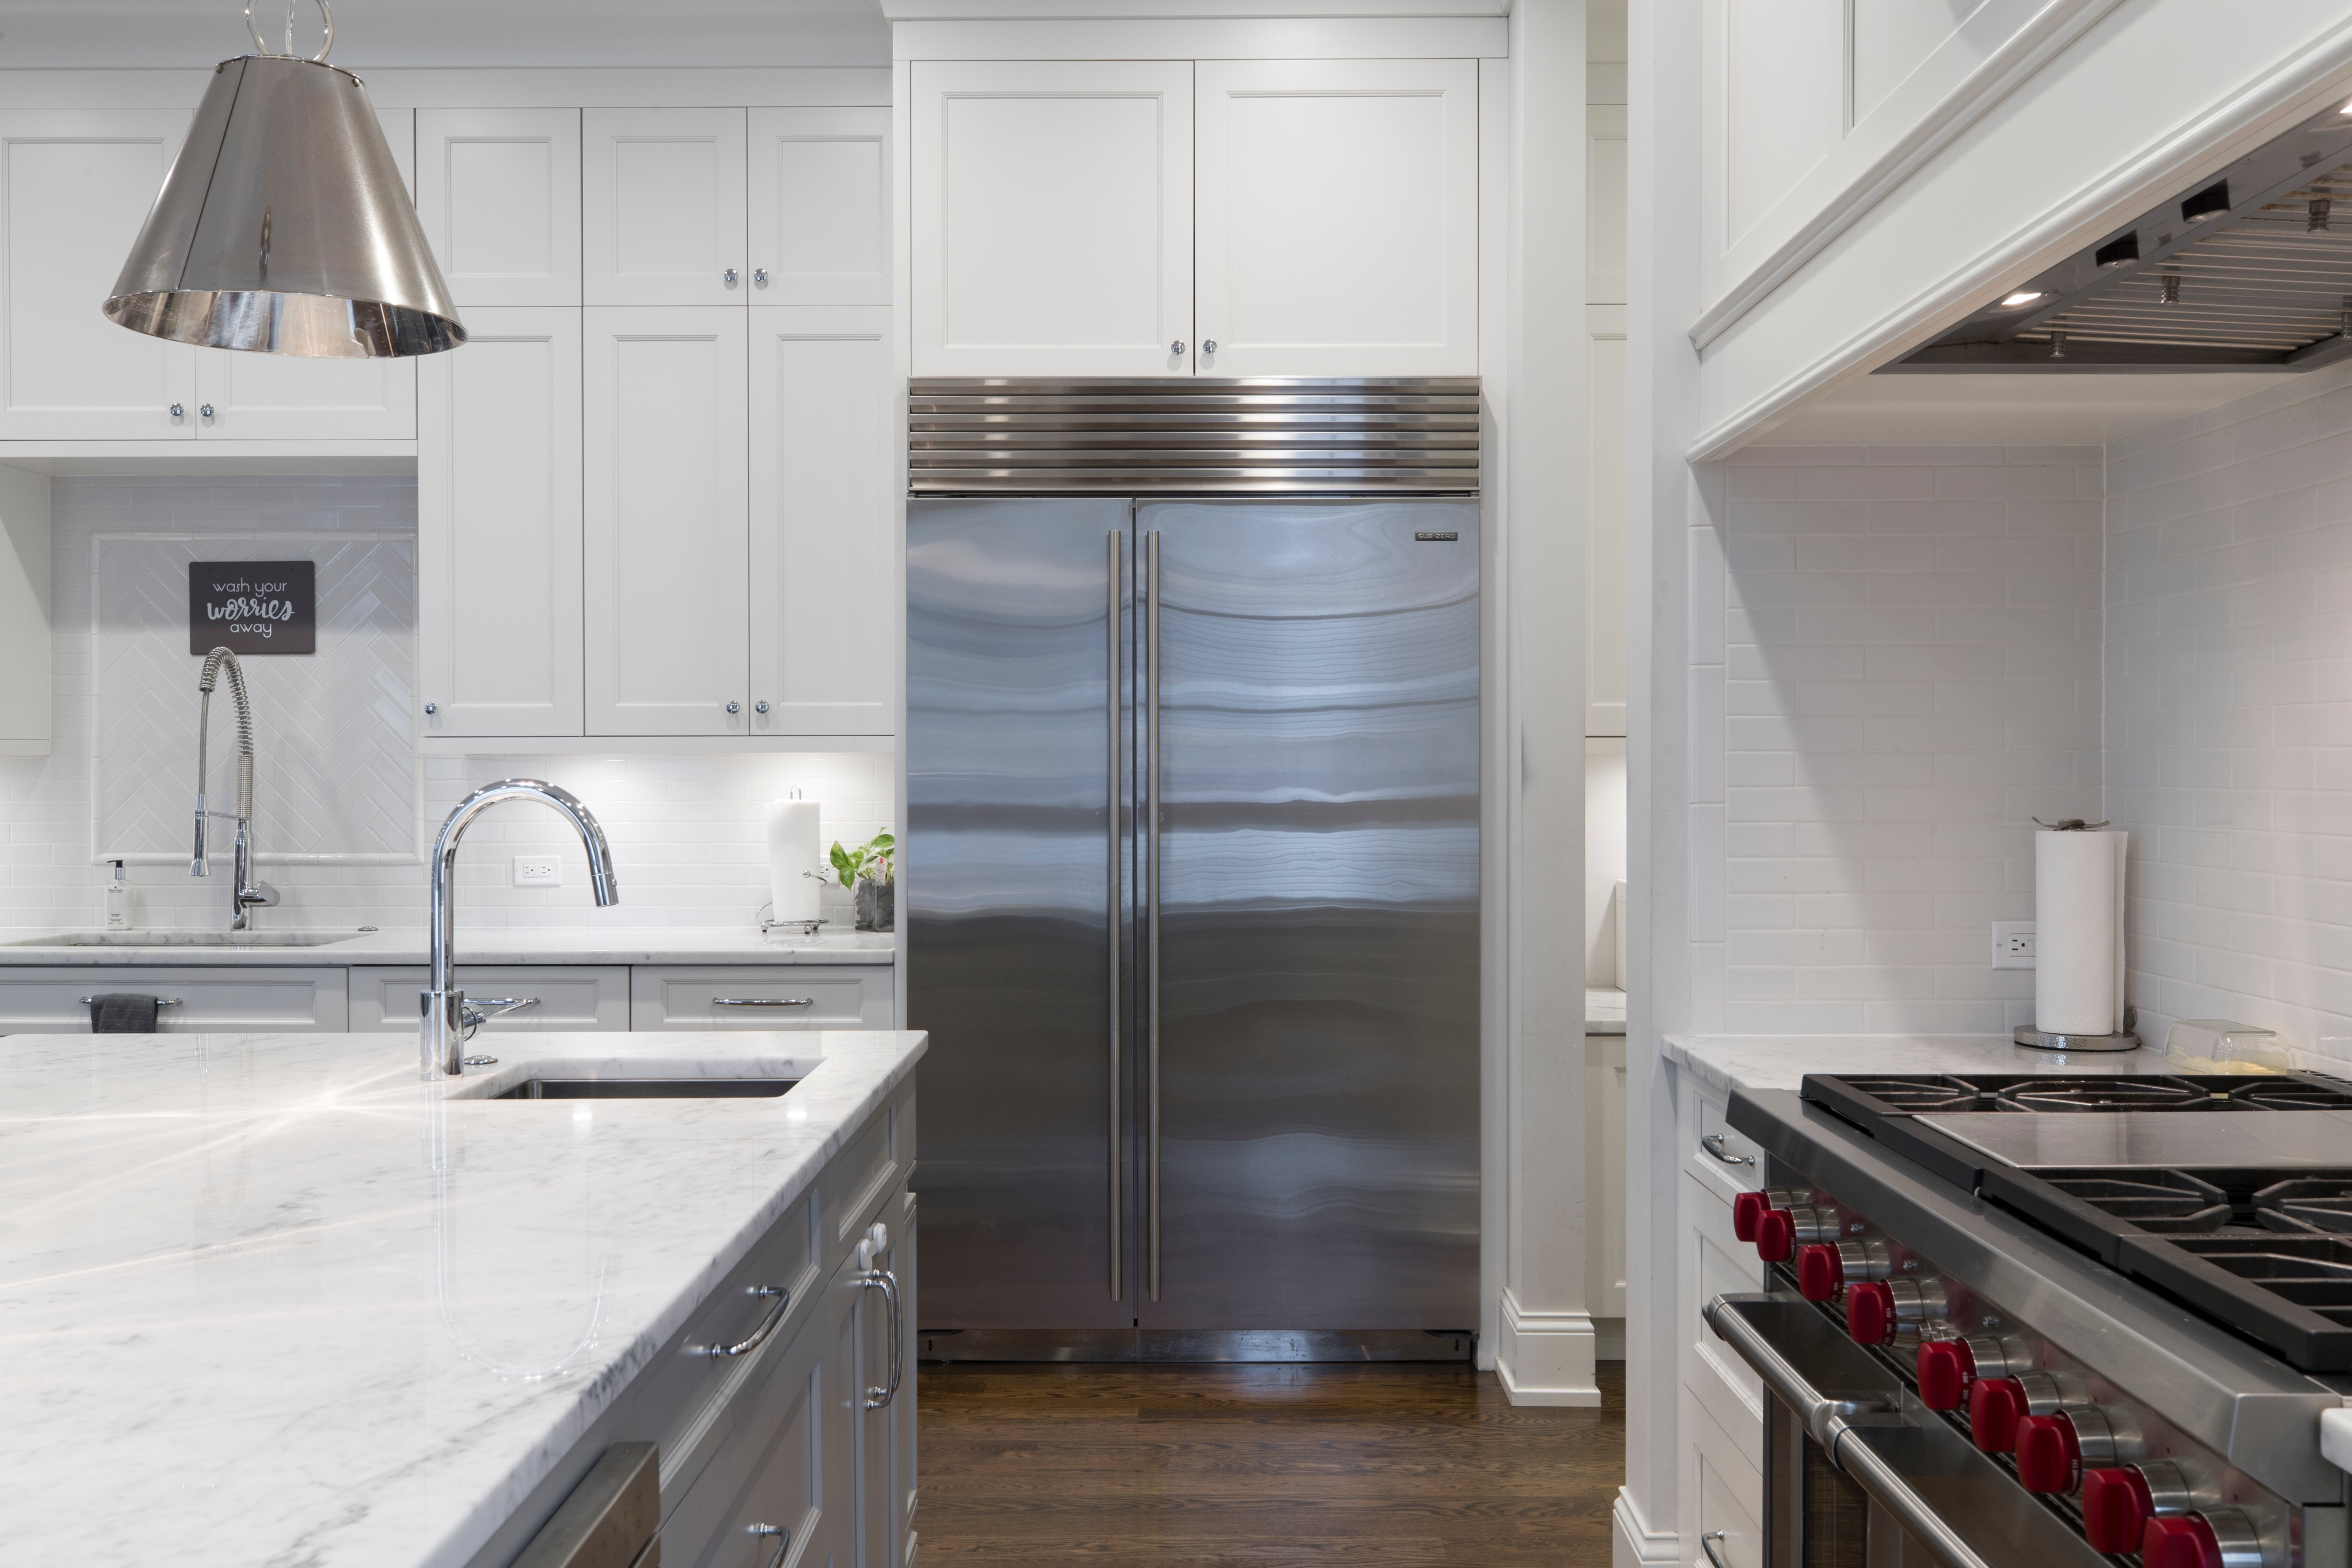 Large open kitchen with a stainless steel refrigerator